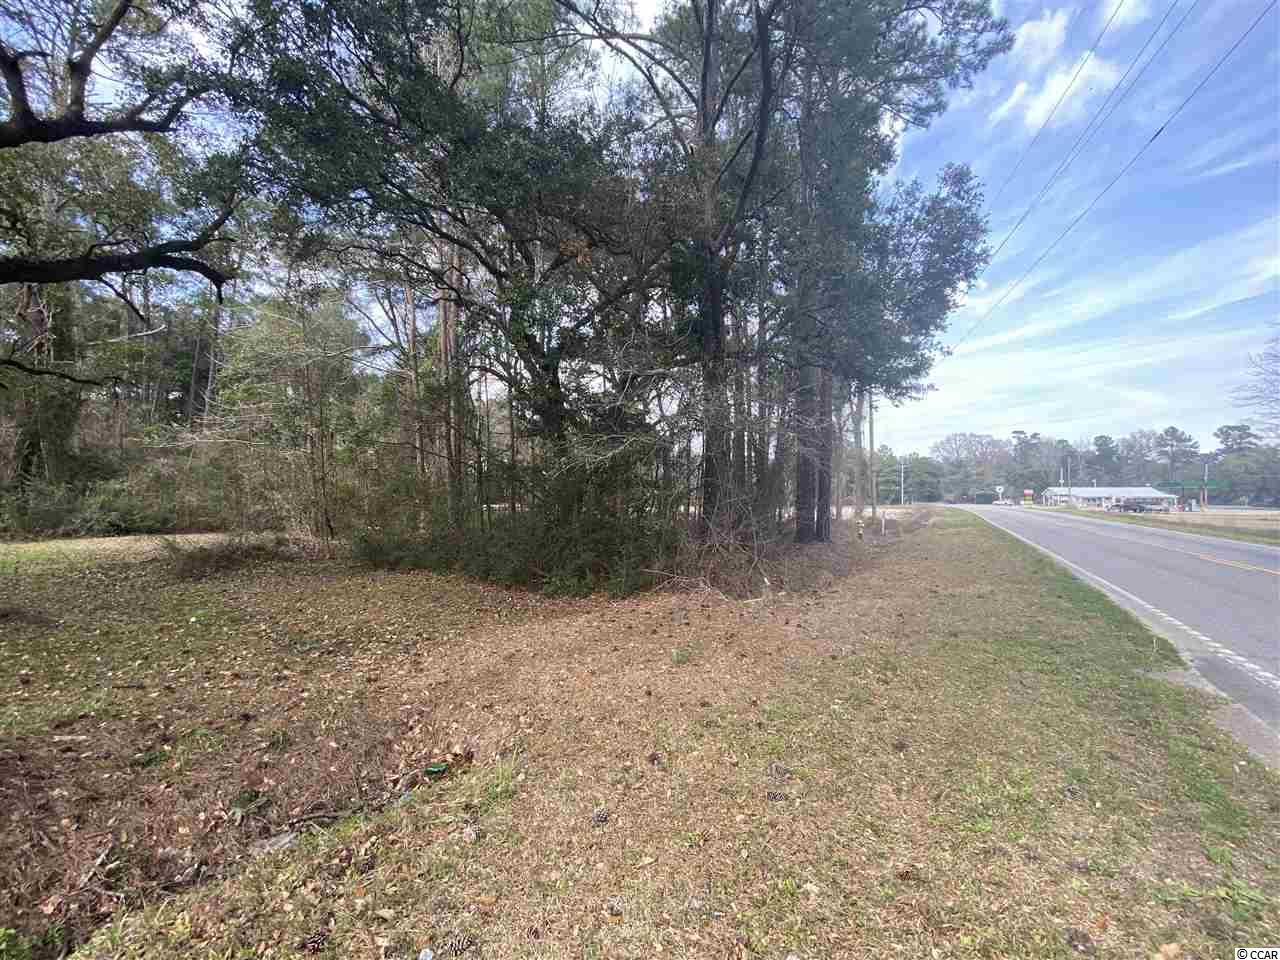 1.45 acre residential wooded lot. County water available. Road frontage on two streets